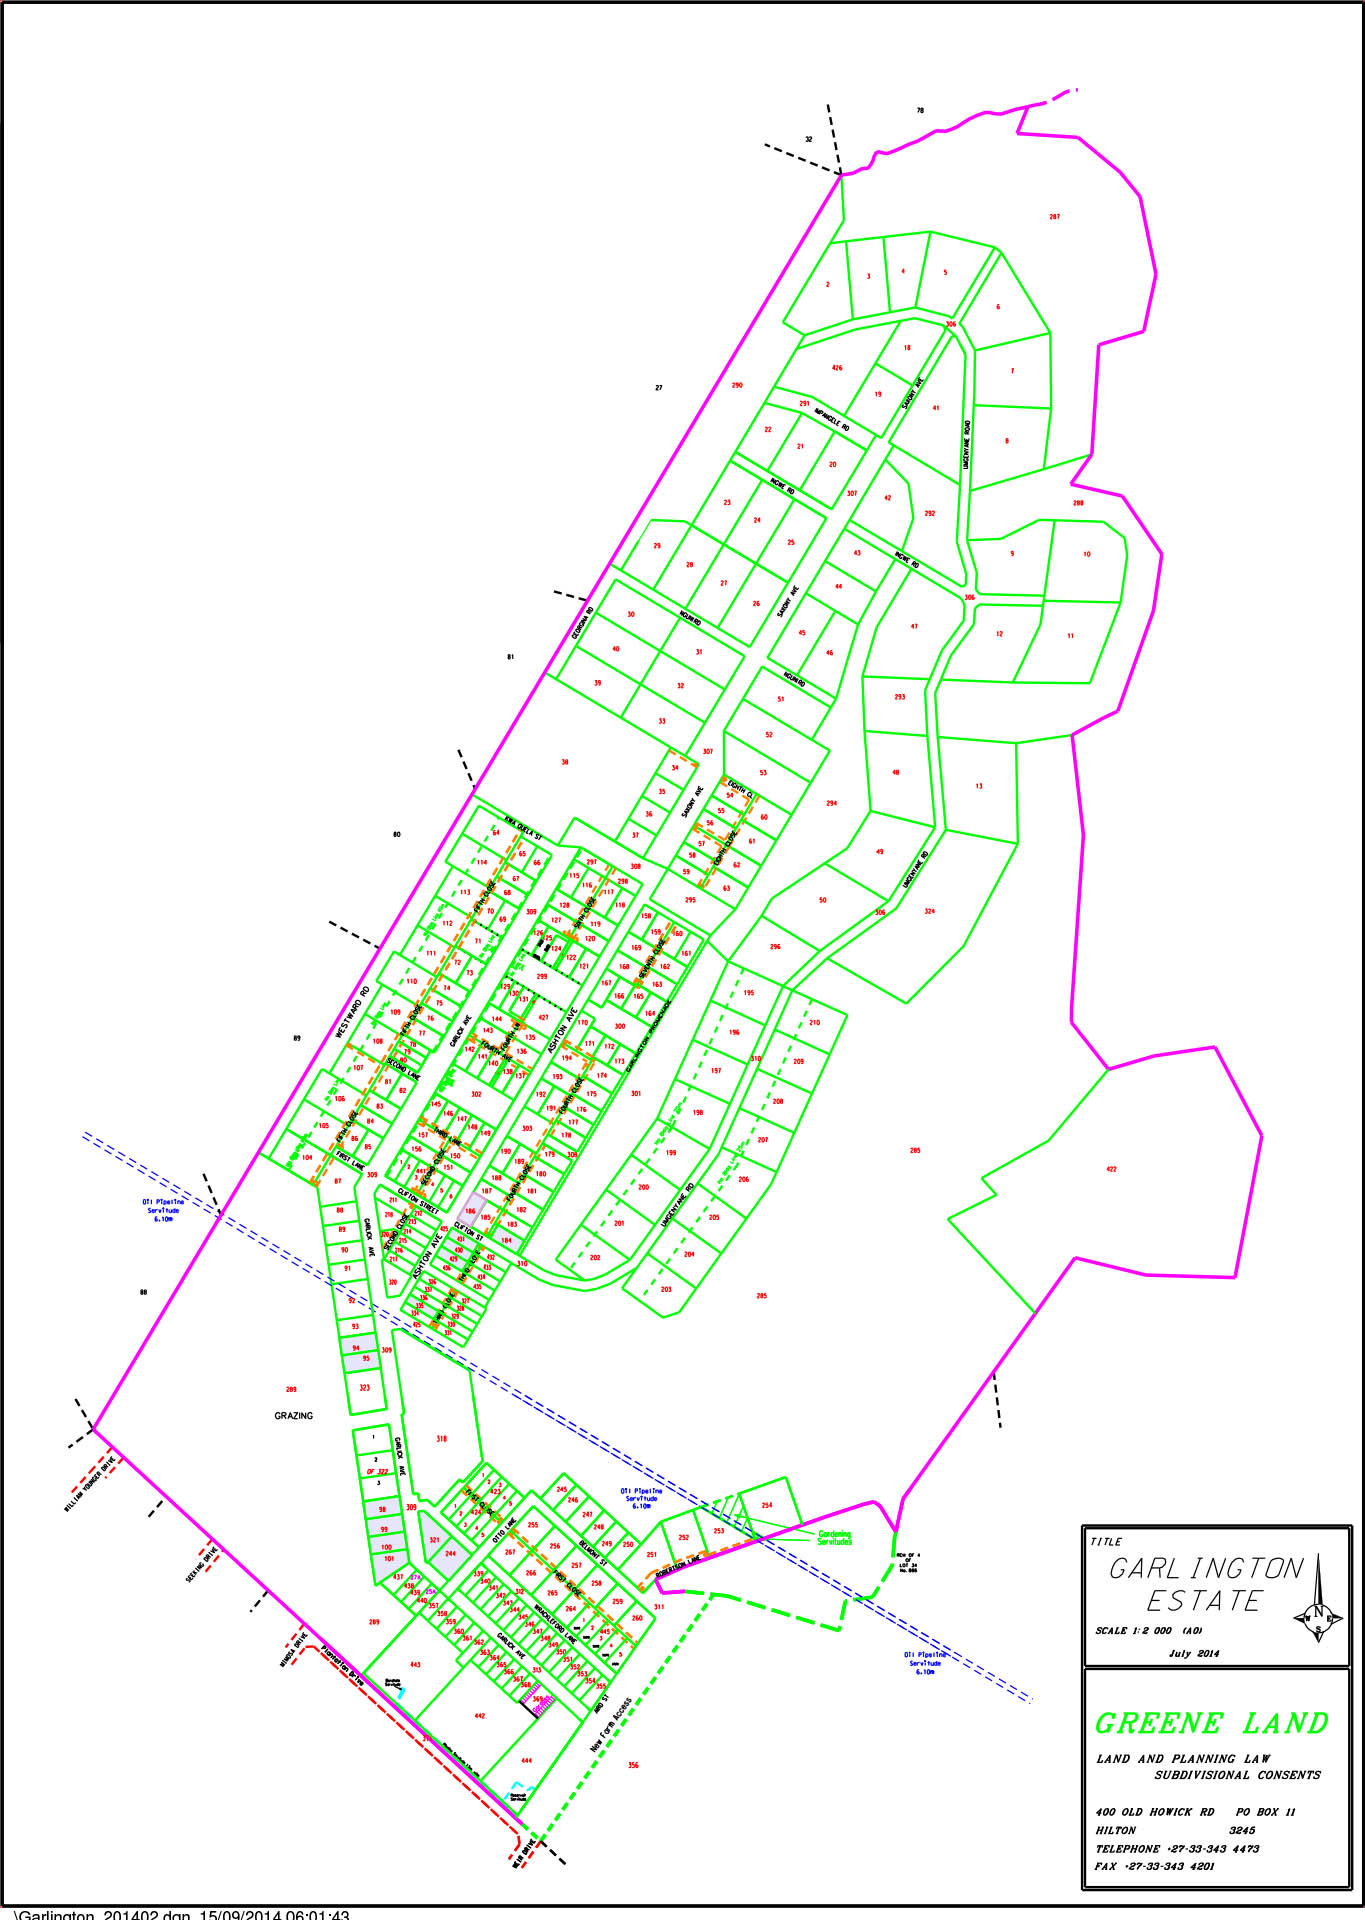 map-layout-garlington-estate-equipment-luxury-country-development-hilton-midlands-meander-kzn